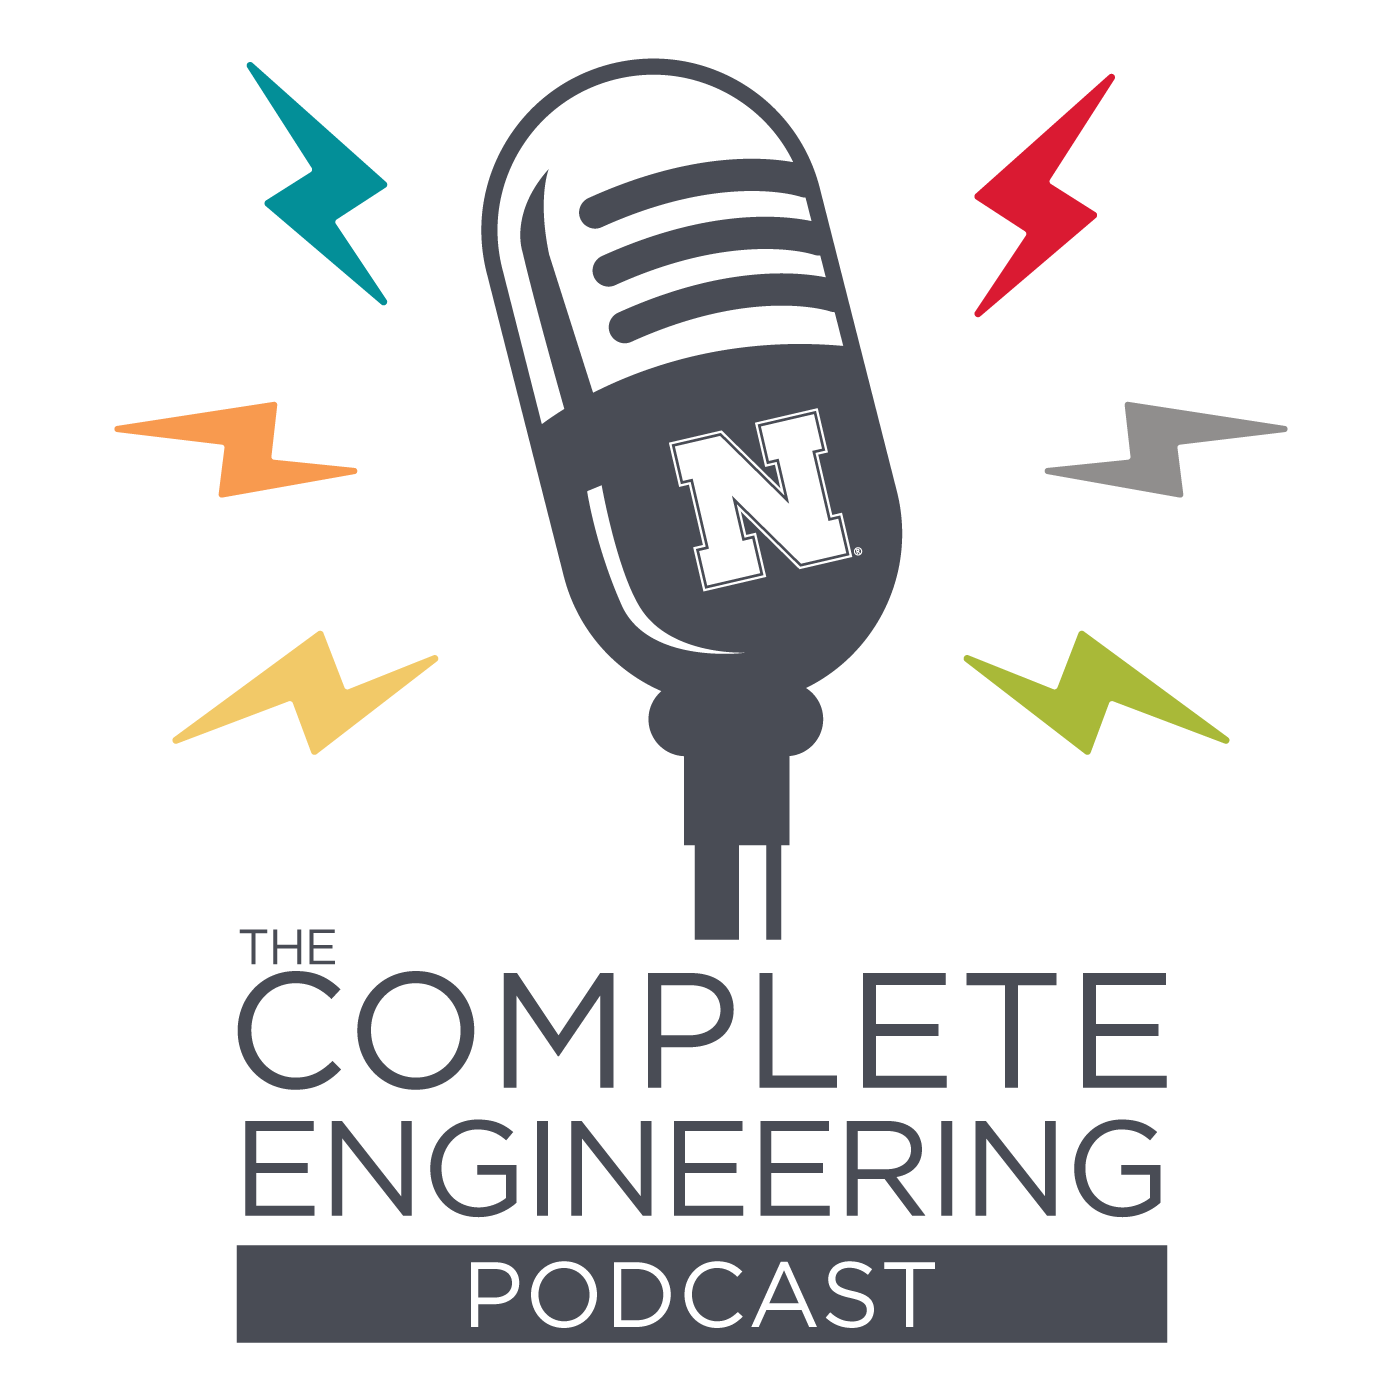 The Complete Engineering Podcast